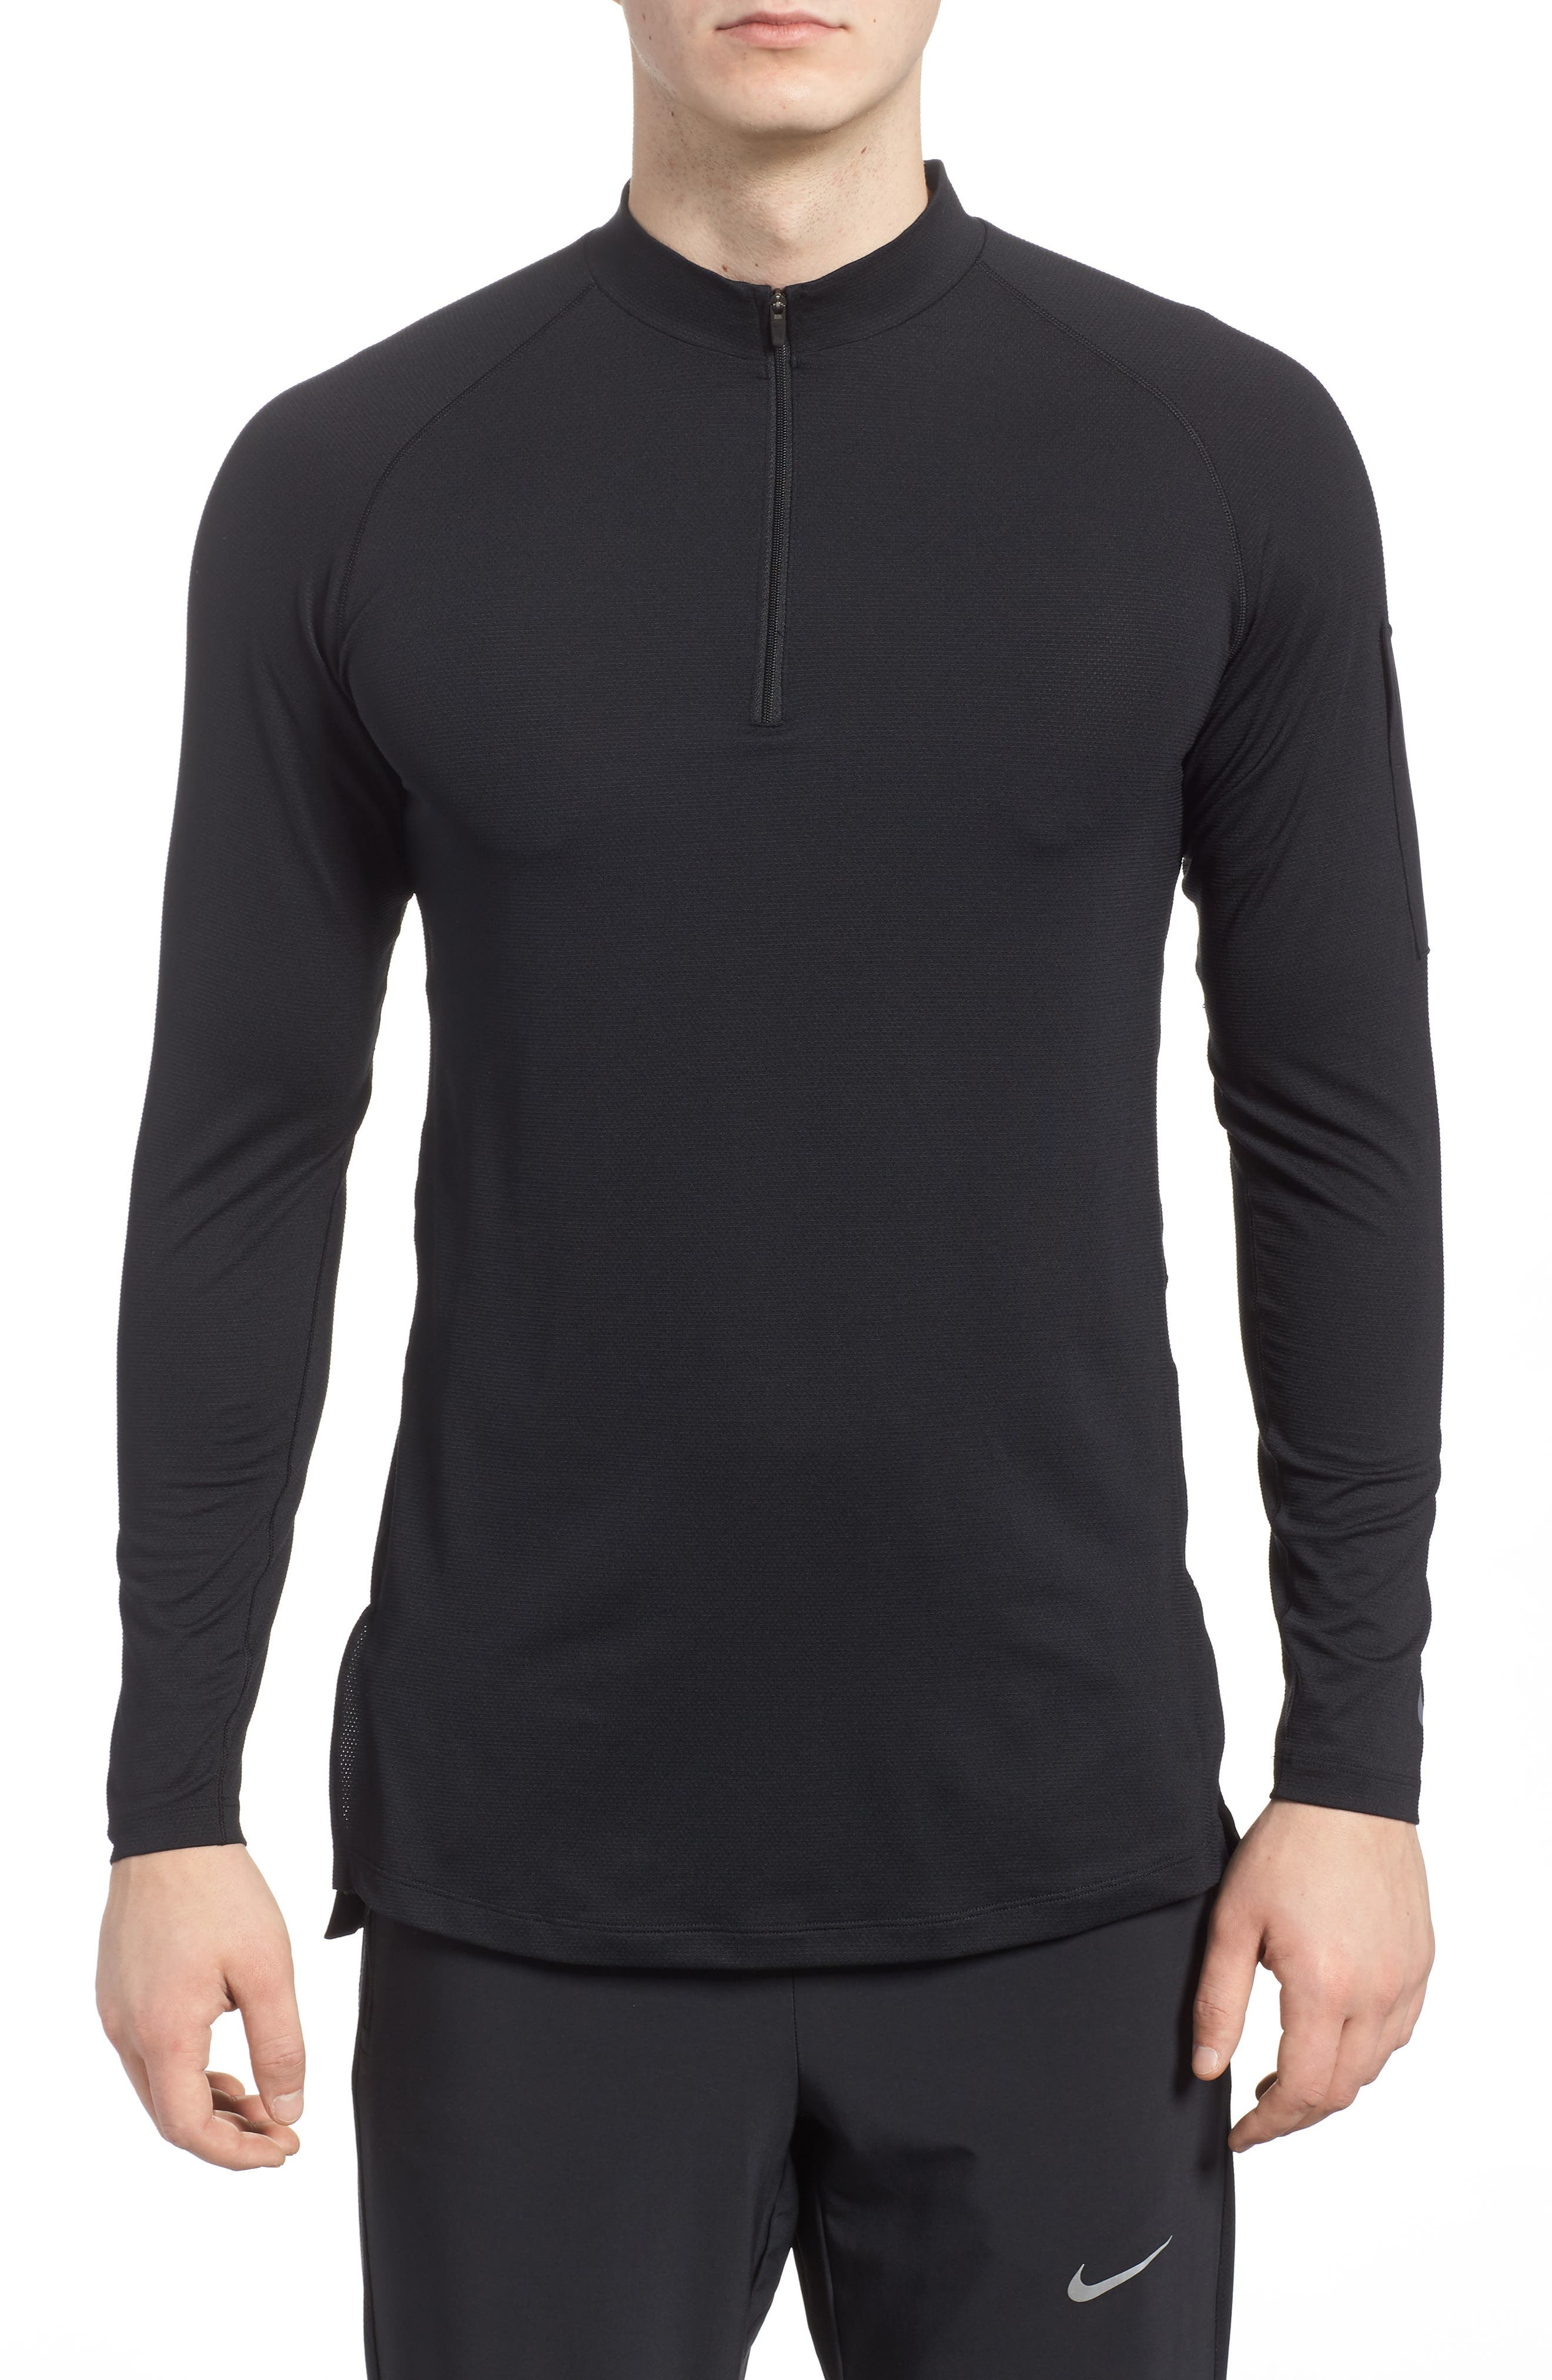 Pro Fitted Utility Dry Tech Sport Top,                             Main thumbnail 1, color,                             Black/ Black